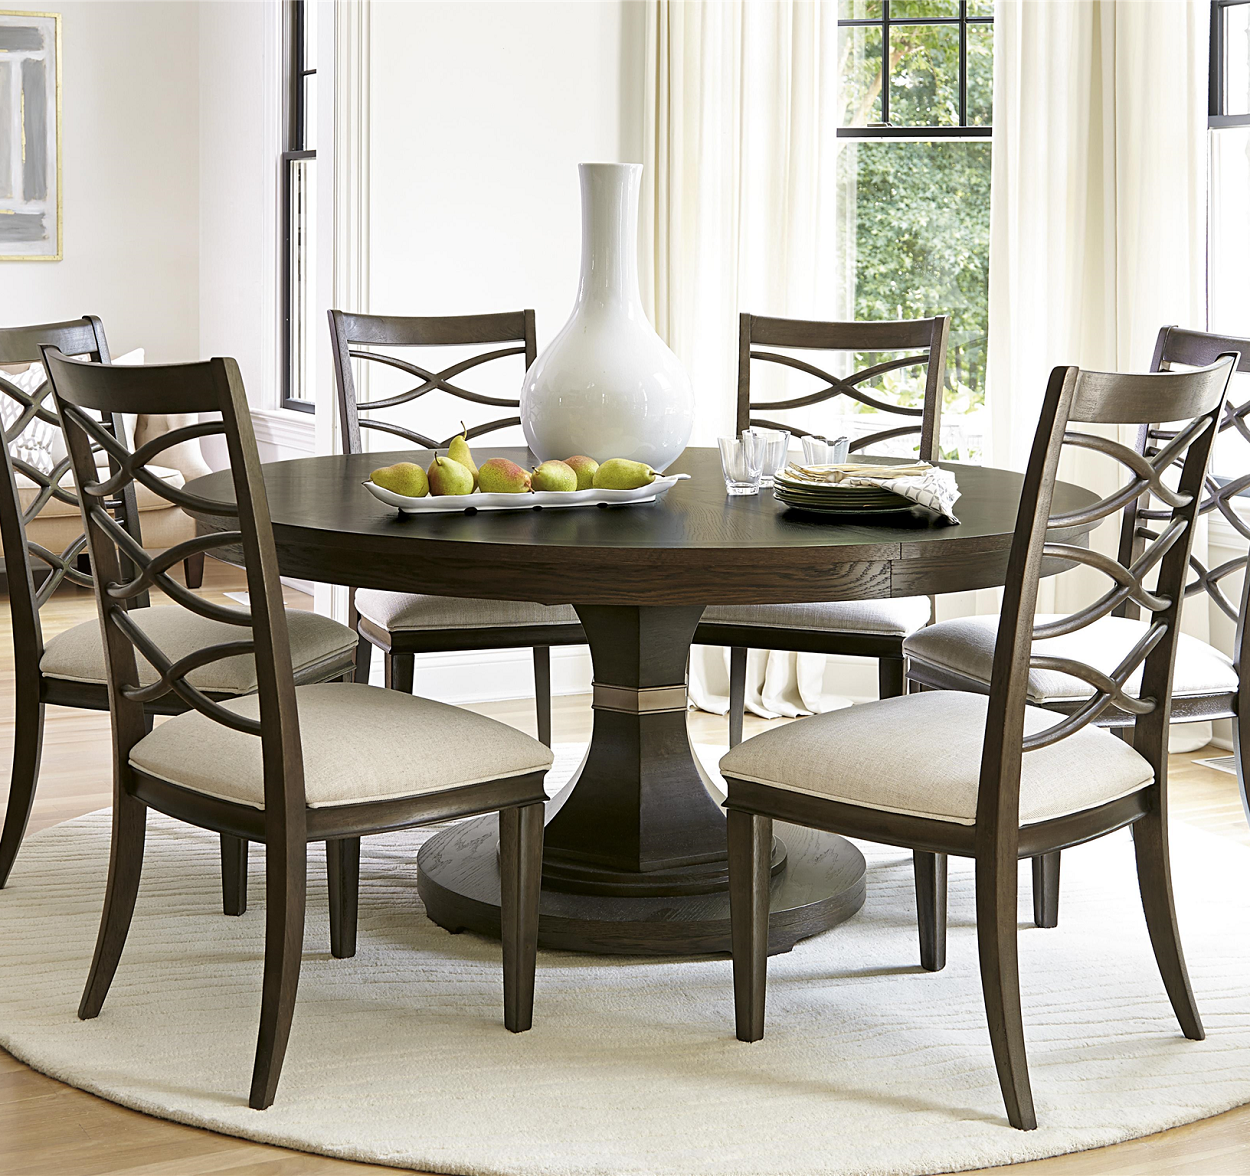 California Rustic Oak Expandable Round Dining Table Round Dining